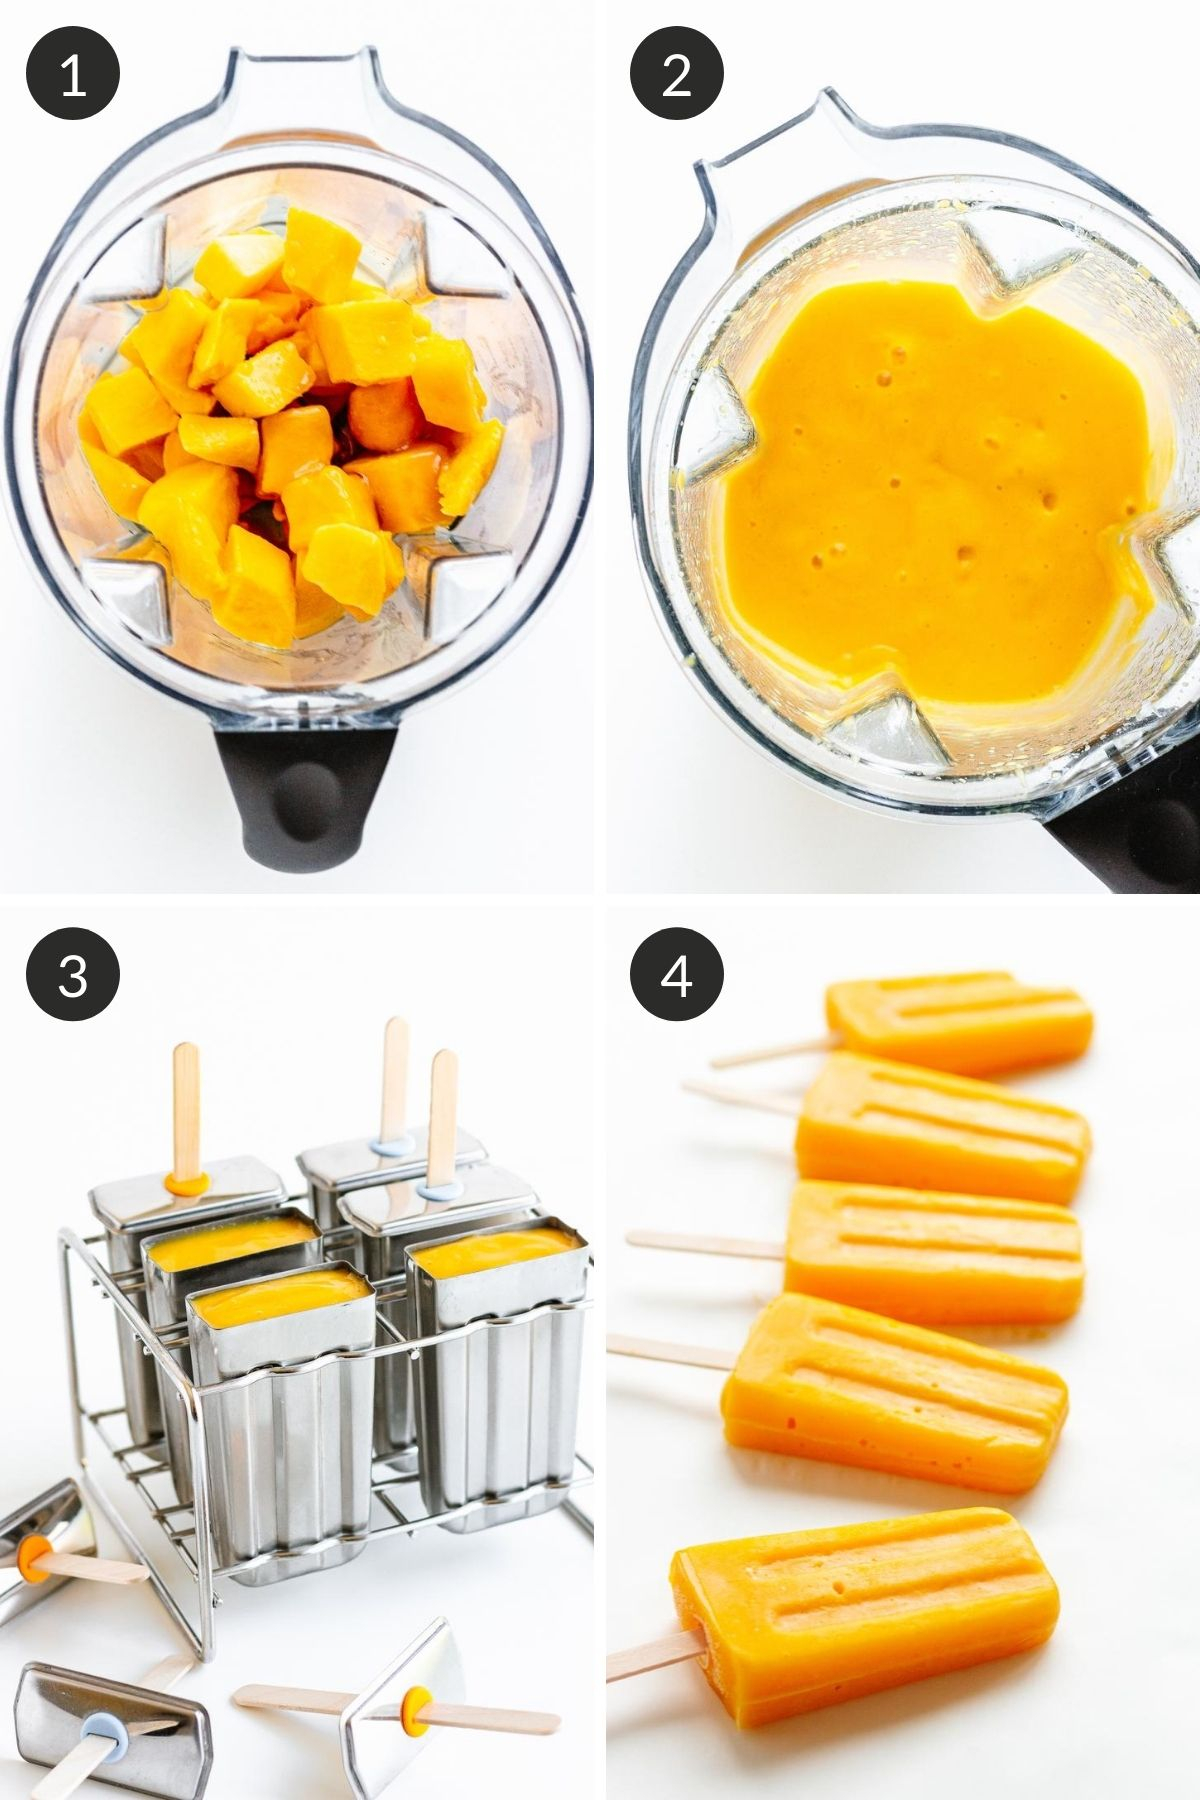 Photo collage showing step by step how to make mango popsicles.